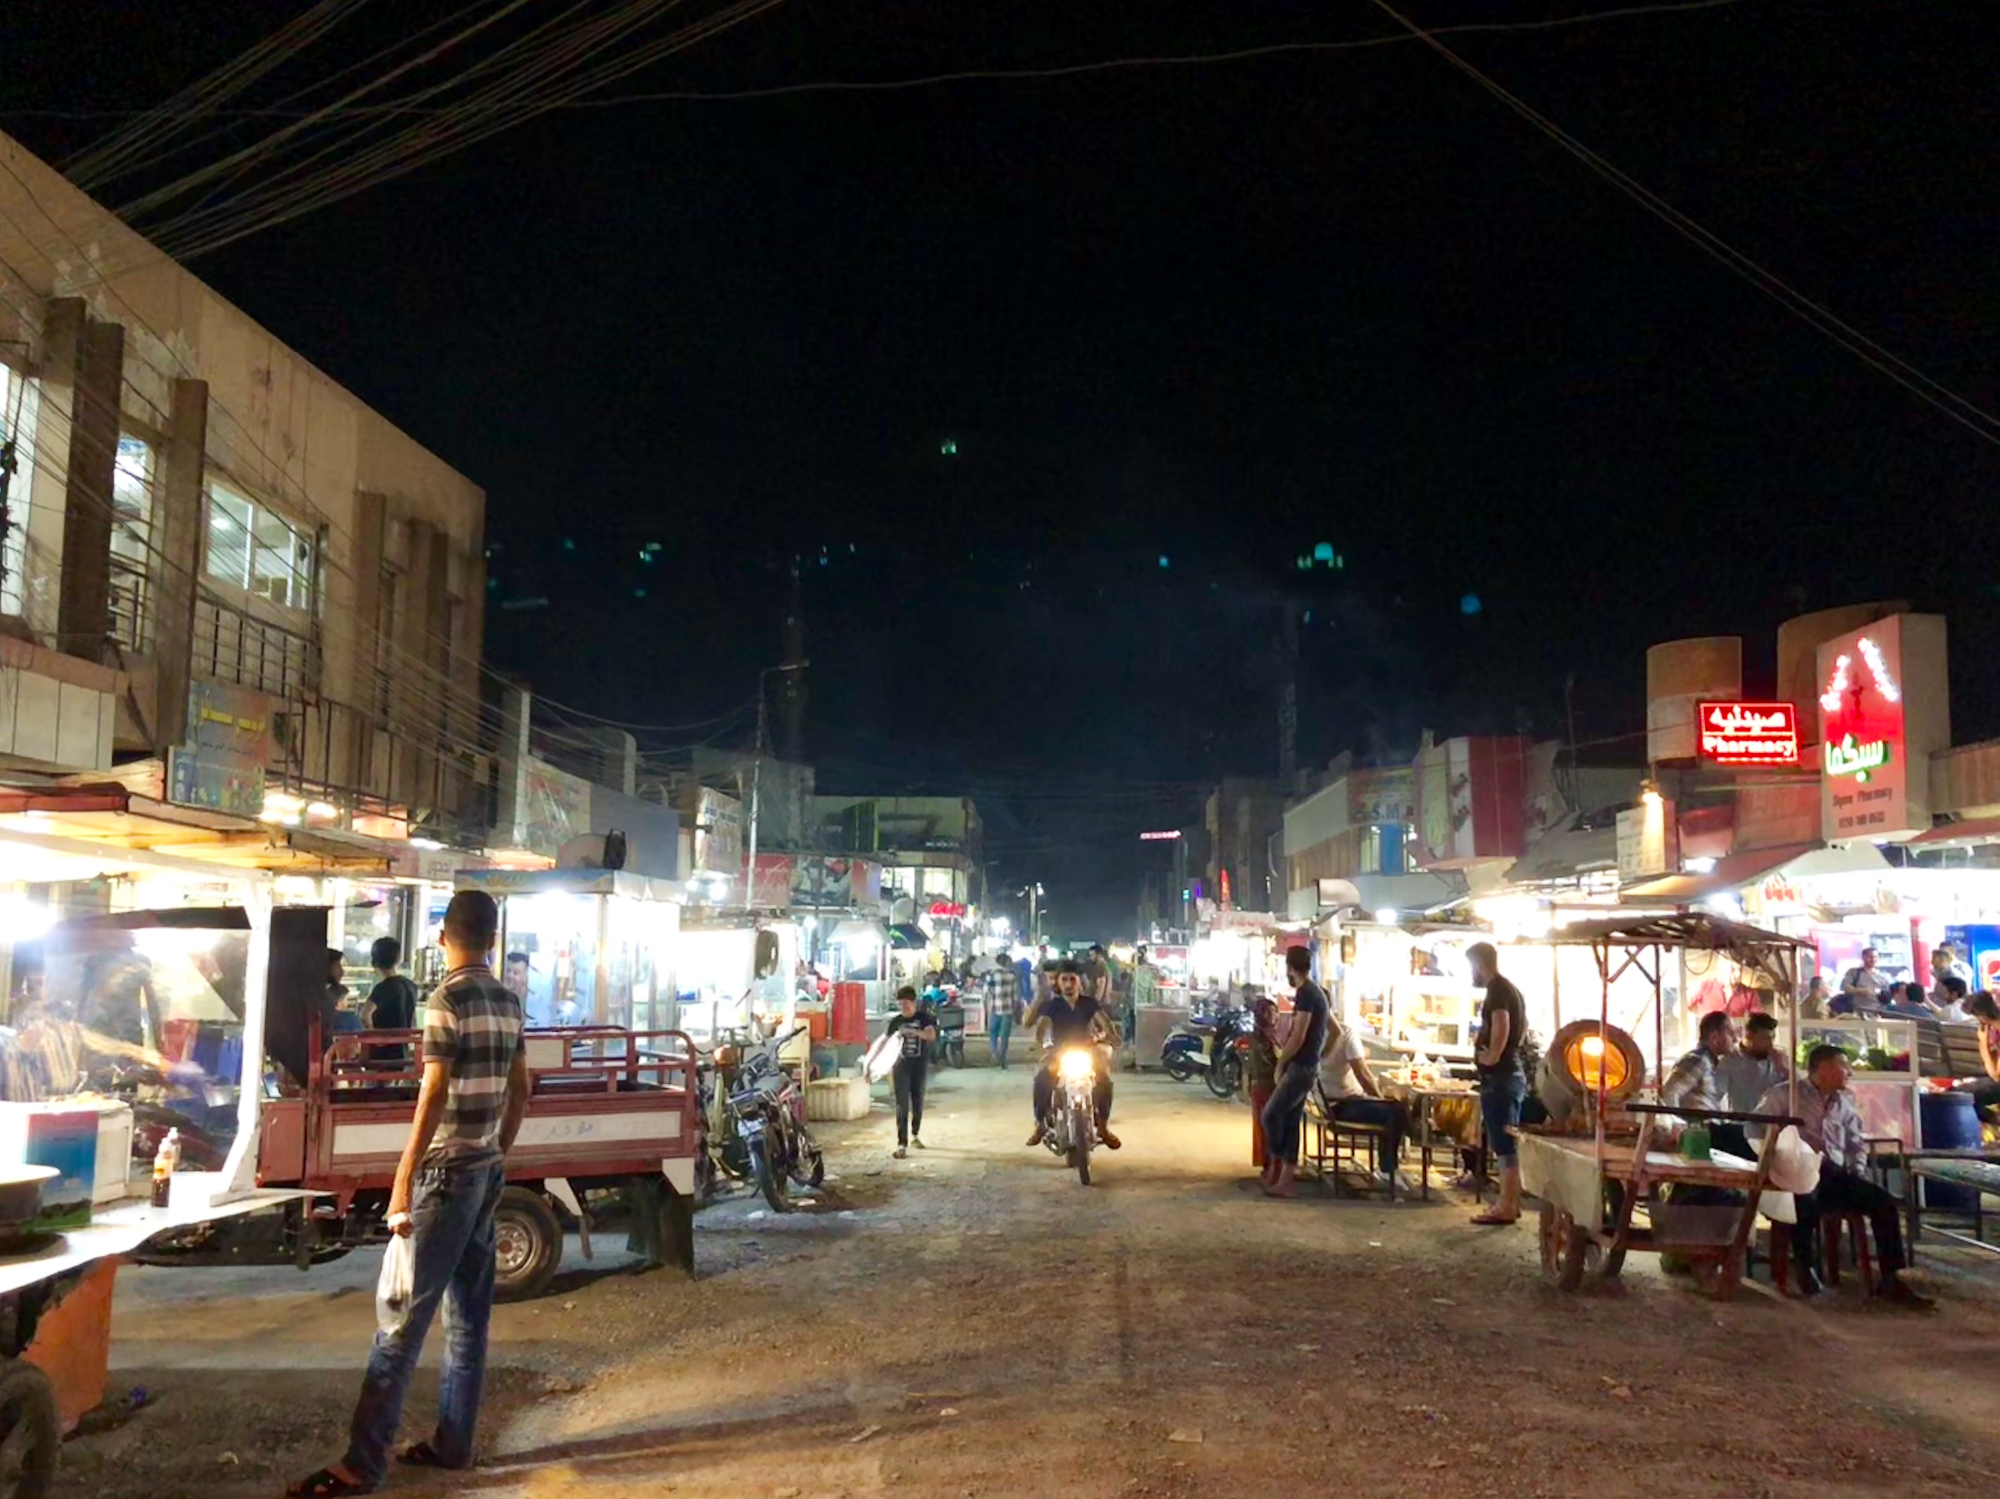 A street of Erbil at 2AM, full of people